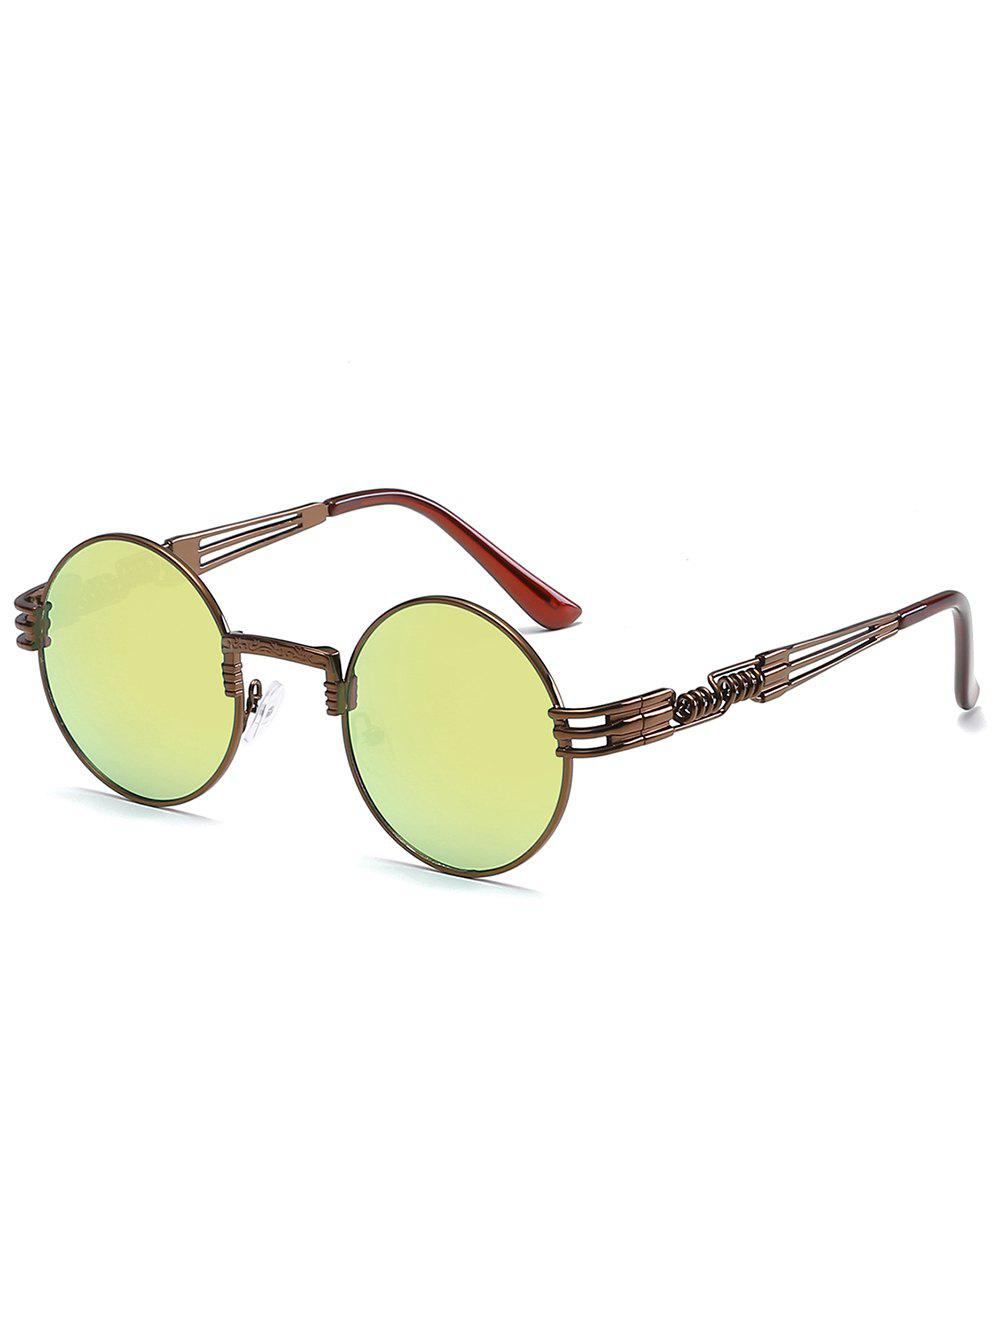 Chic Novelty Metal Frame Round Sunglasses